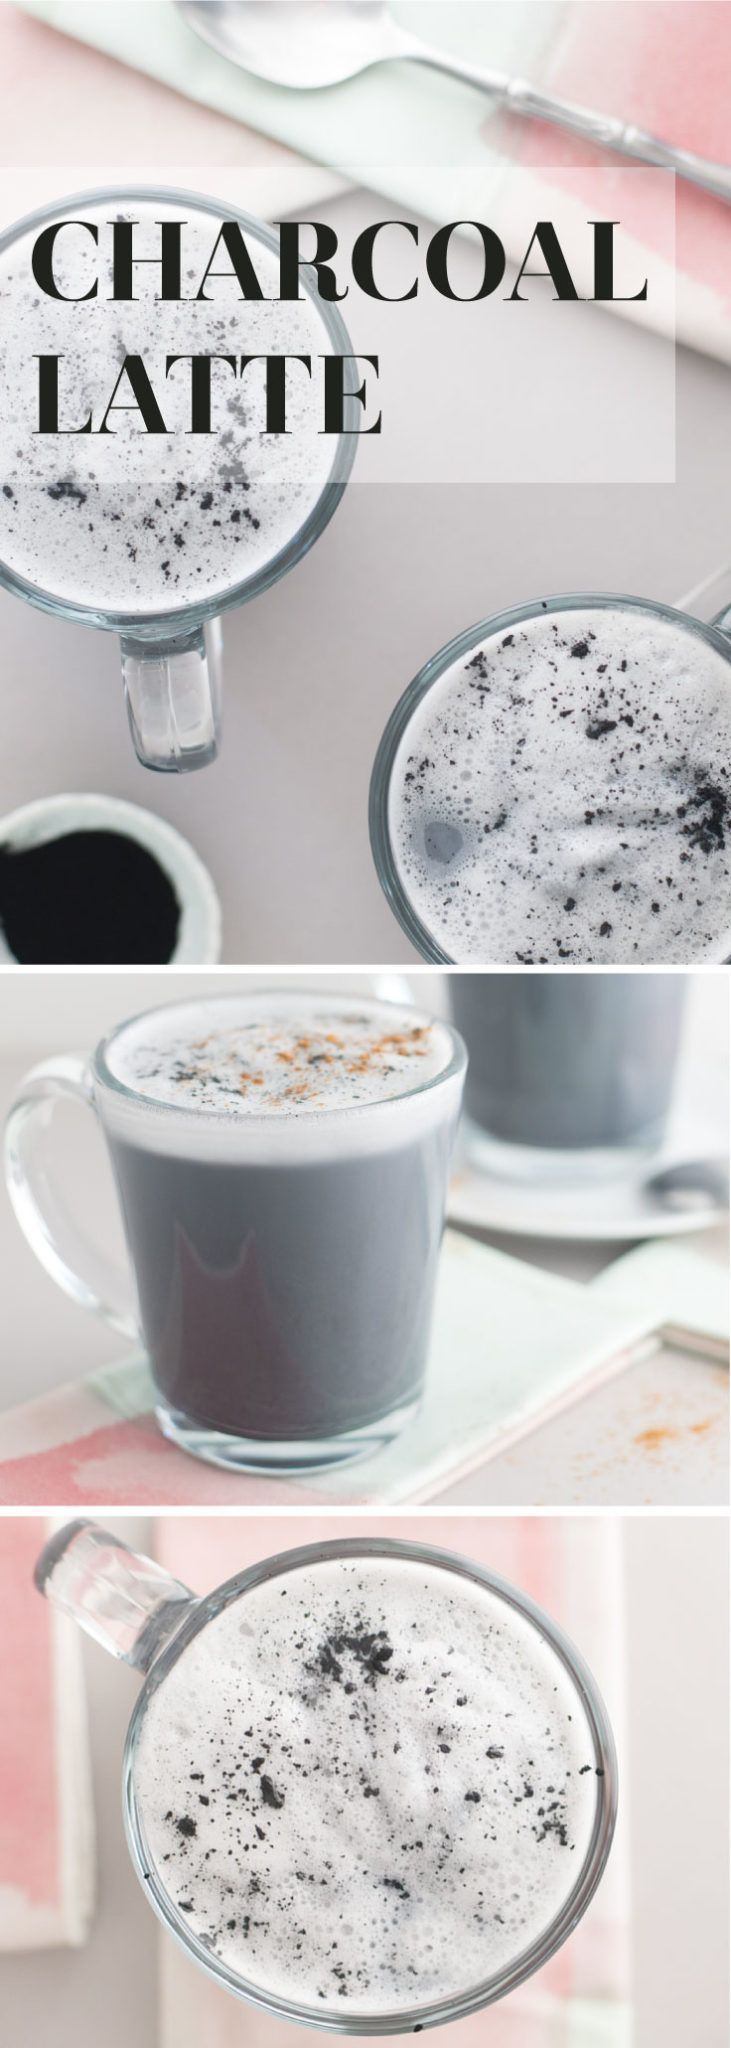 Activated Charcoal Latte -- Let your inner-goth squeal with this black charcoal latte! It's all you need to detox and feel great. Activated charcoal has amazing benefits for the inside and out and when paired with almond milk, makes a delicious and healthy beverage! - mindfulavocado Charcoal Latte -- Let your inner-goth squeal with this black charcoal latte! It's all you need to detox and feel great. Activated charcoal has amazing benefits for the inside and out and when paired with almond milk, makes a delicious and healthy beverage! - mindfulavocado